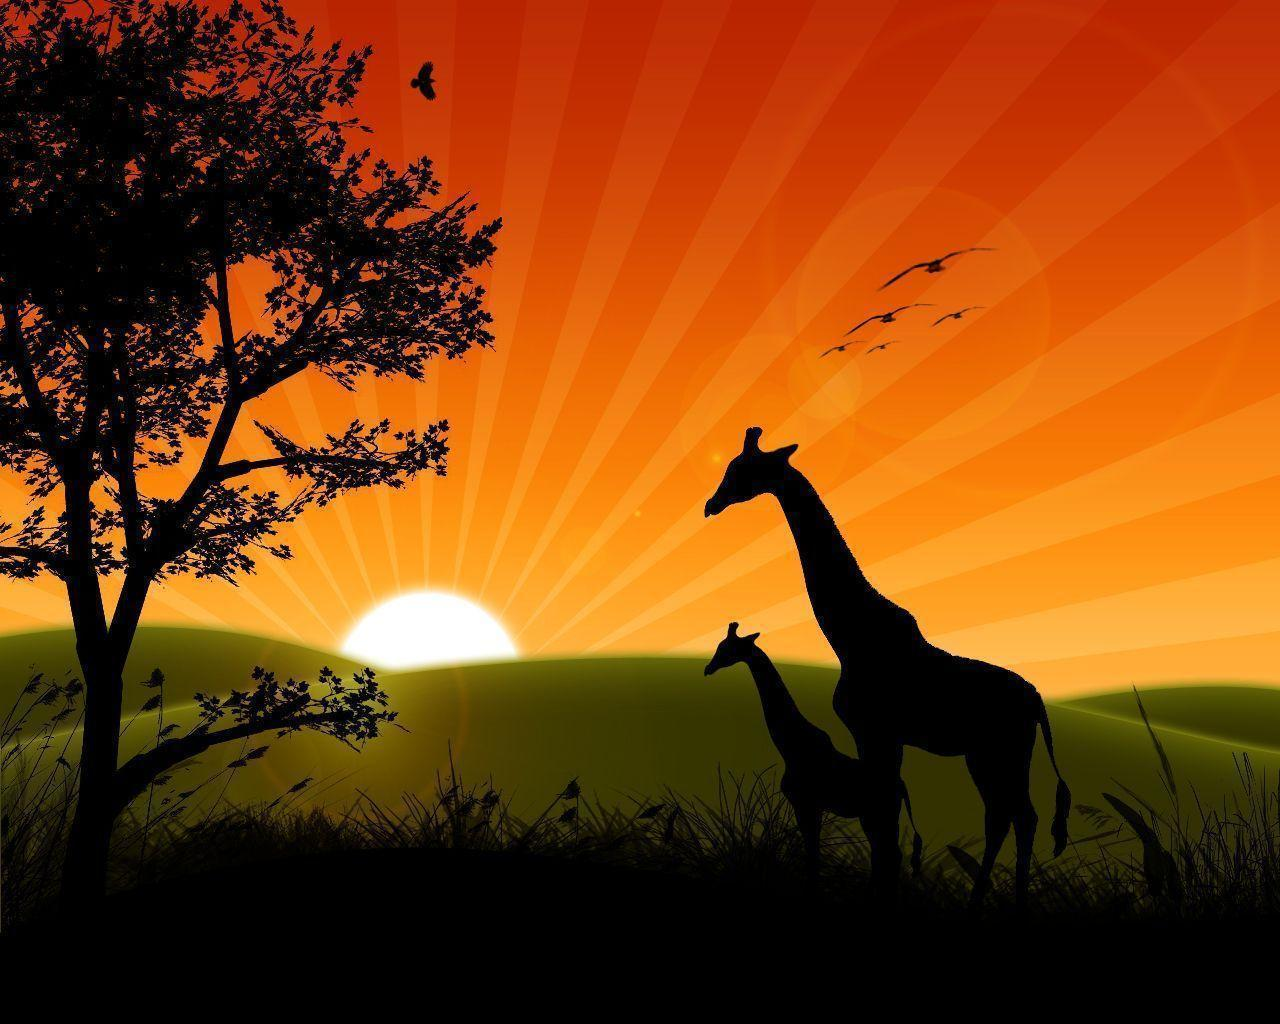 Sunrise Wallpapers Animated Image 6 HD Wallpapers